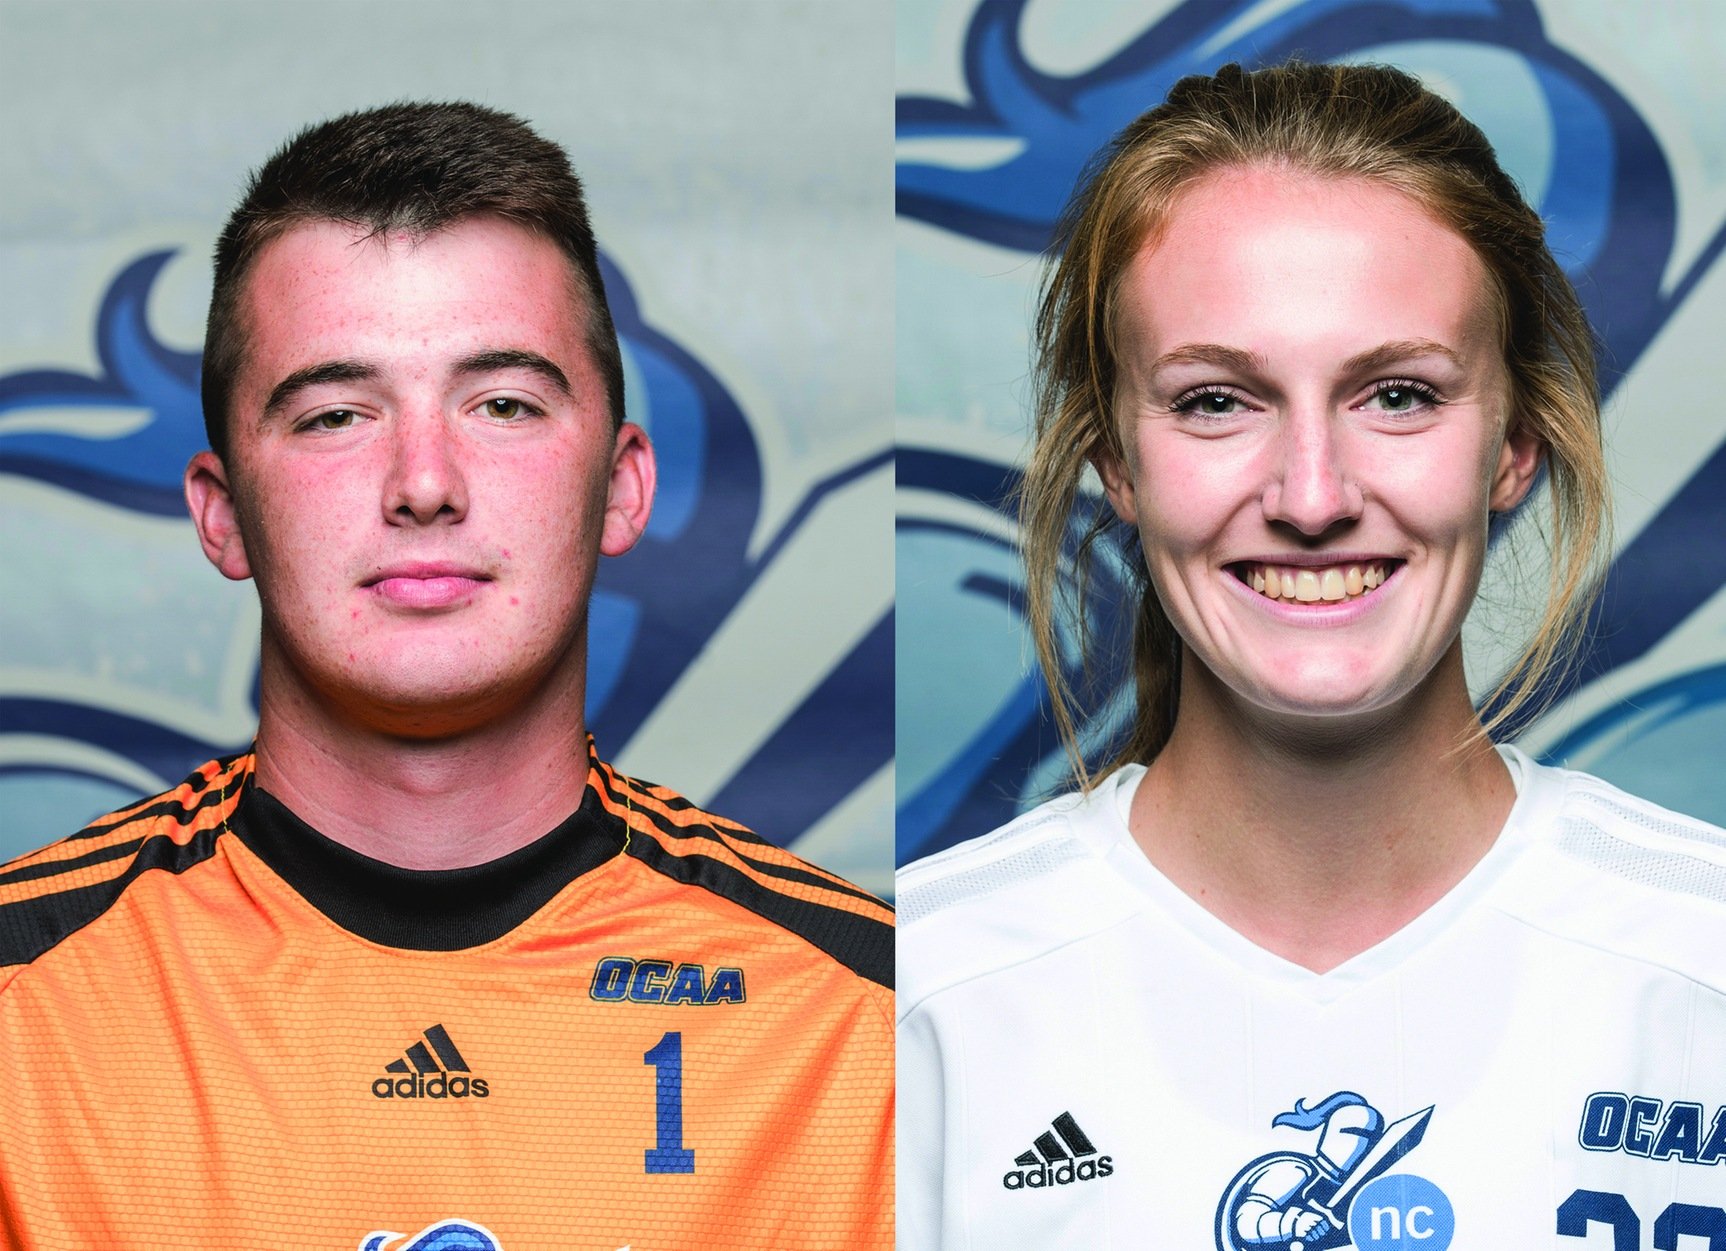 NEWS: Robson and Boulley named Athletes of the Week